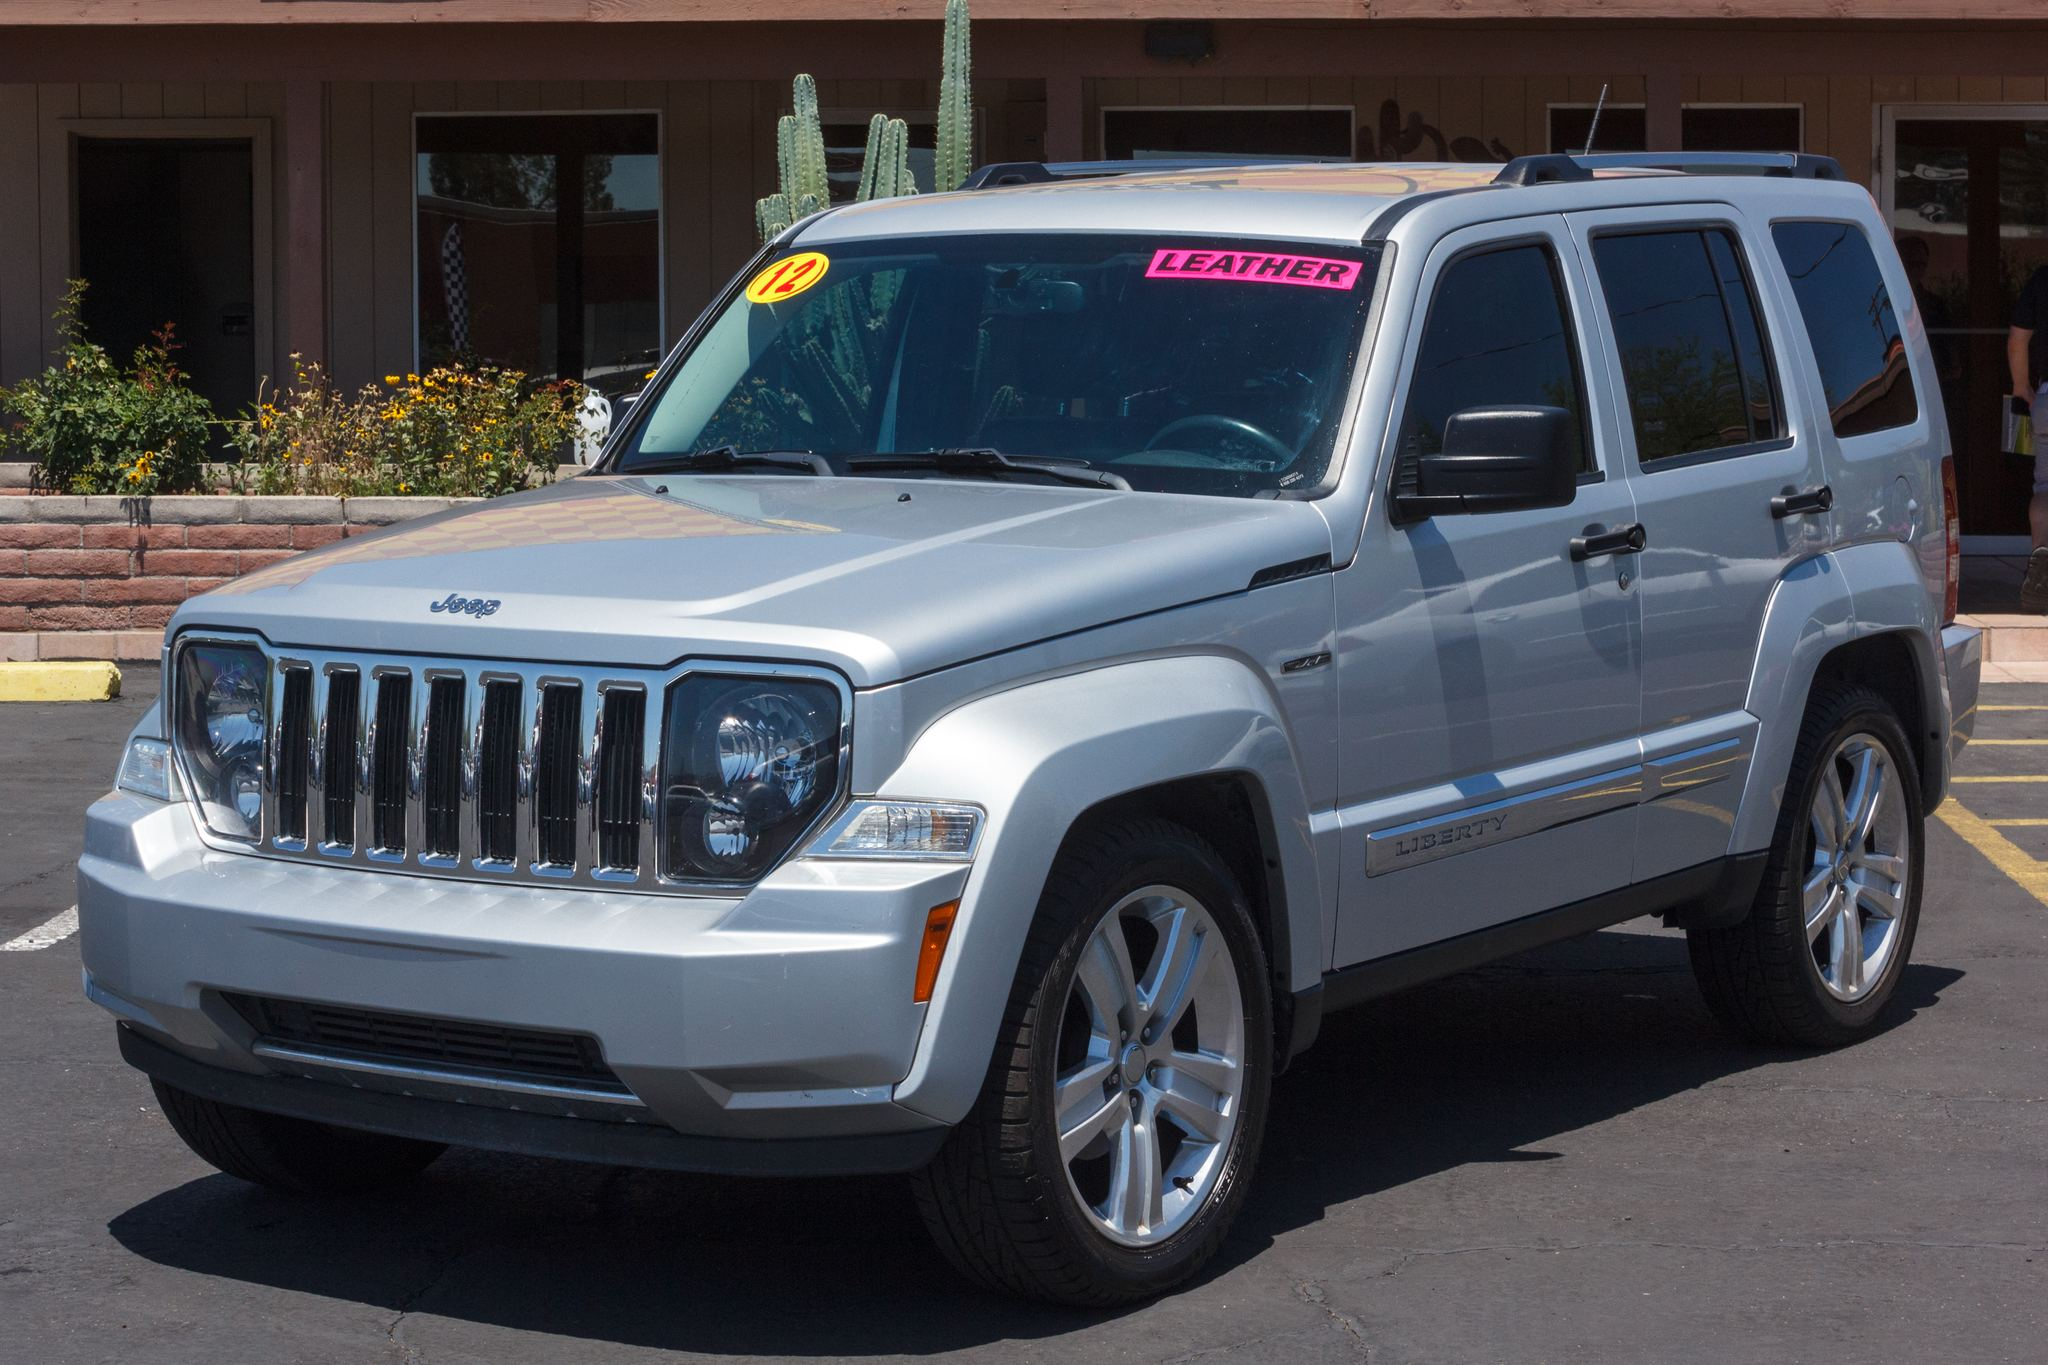 Photo of 2012 Jeep Liberty 2WD 4d Wagon Limited Jet